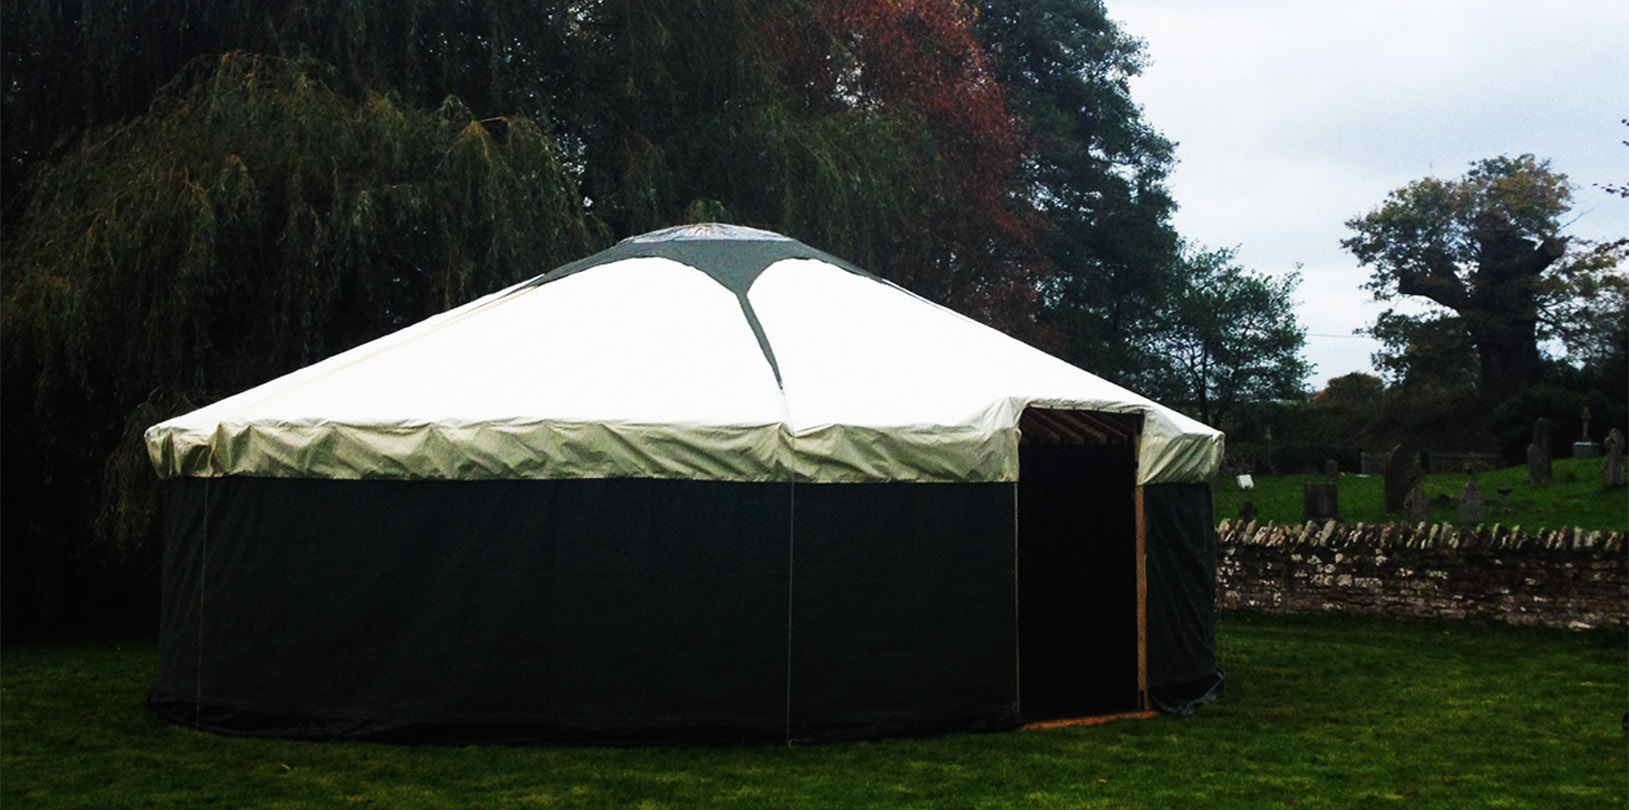 30ft yurt with green walls.